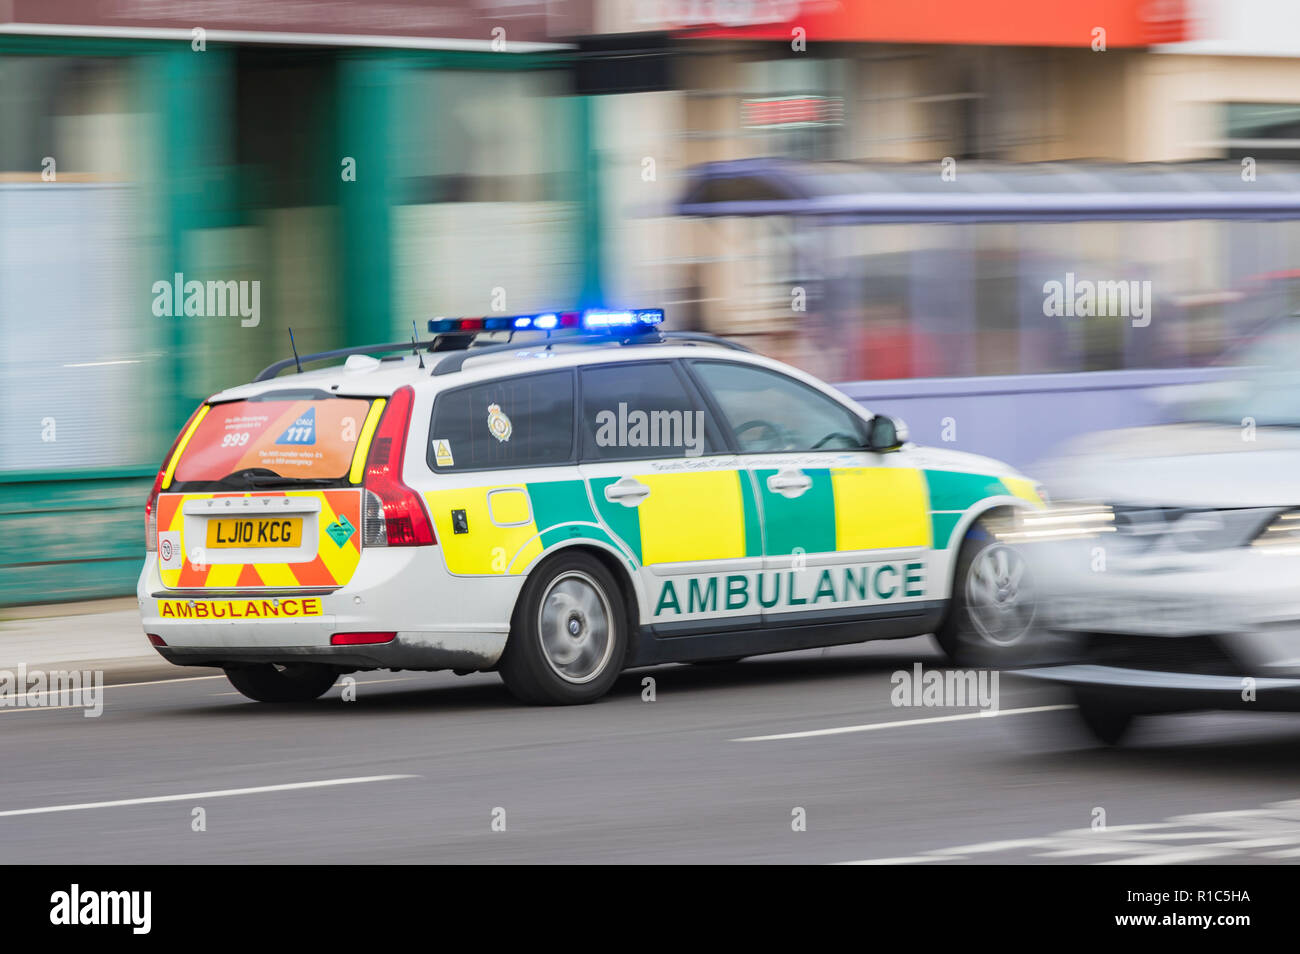 Ambulance fast response car with blue lights flashing on way to emergency call in West Sussex, UK. Motion blur effect. - Stock Image